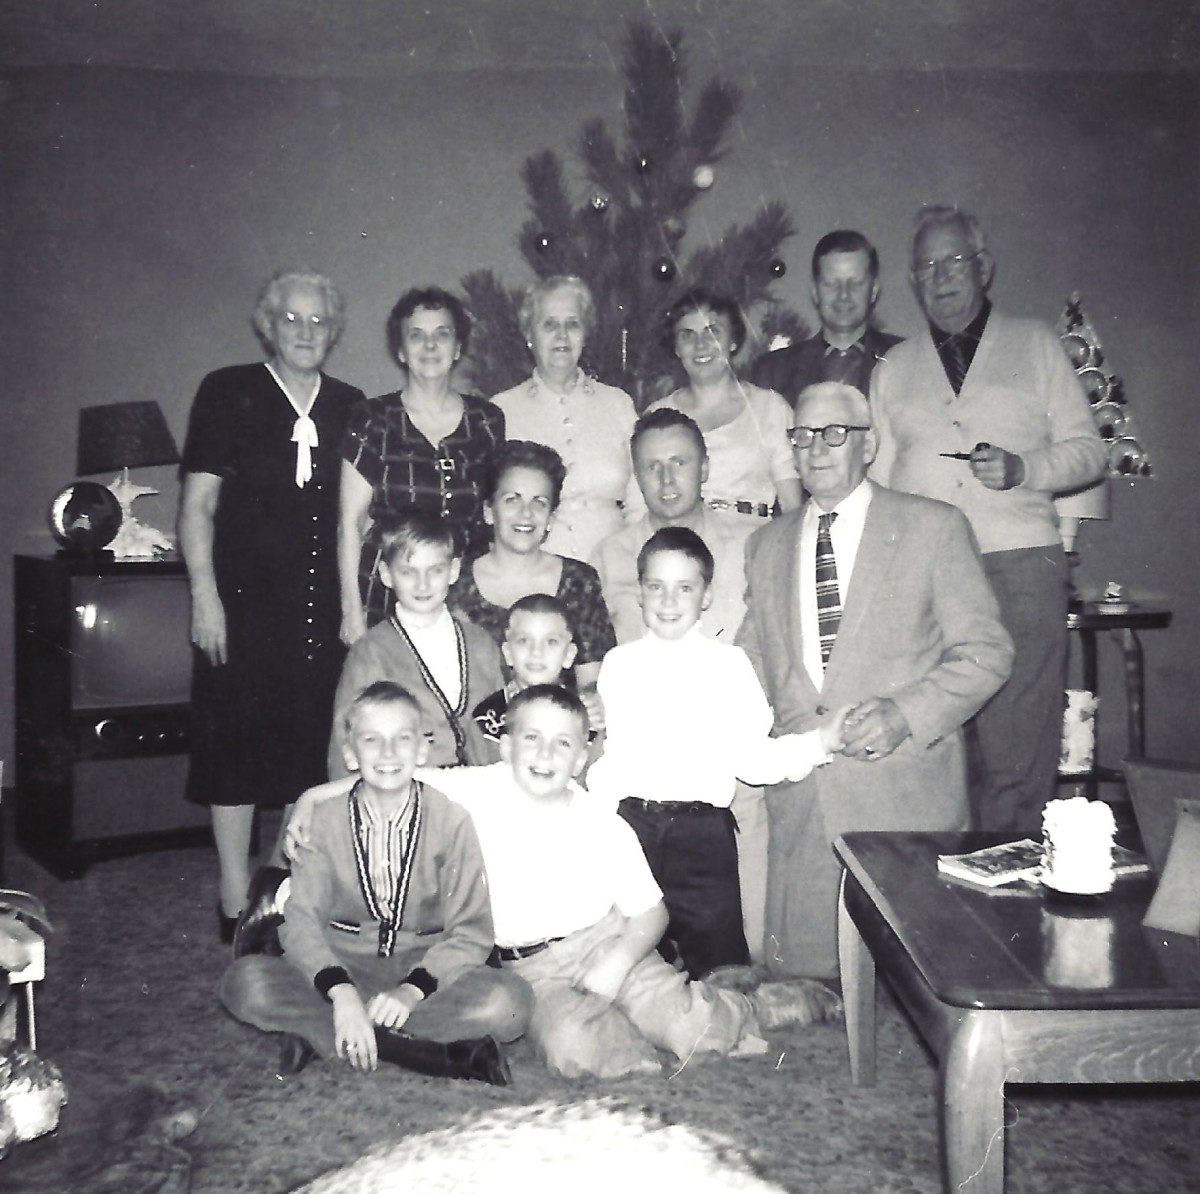 My family including maternal grandparents, great aunts and great uncle, aunt and uncle and cousins.  I took both photos with my Brownie camera.